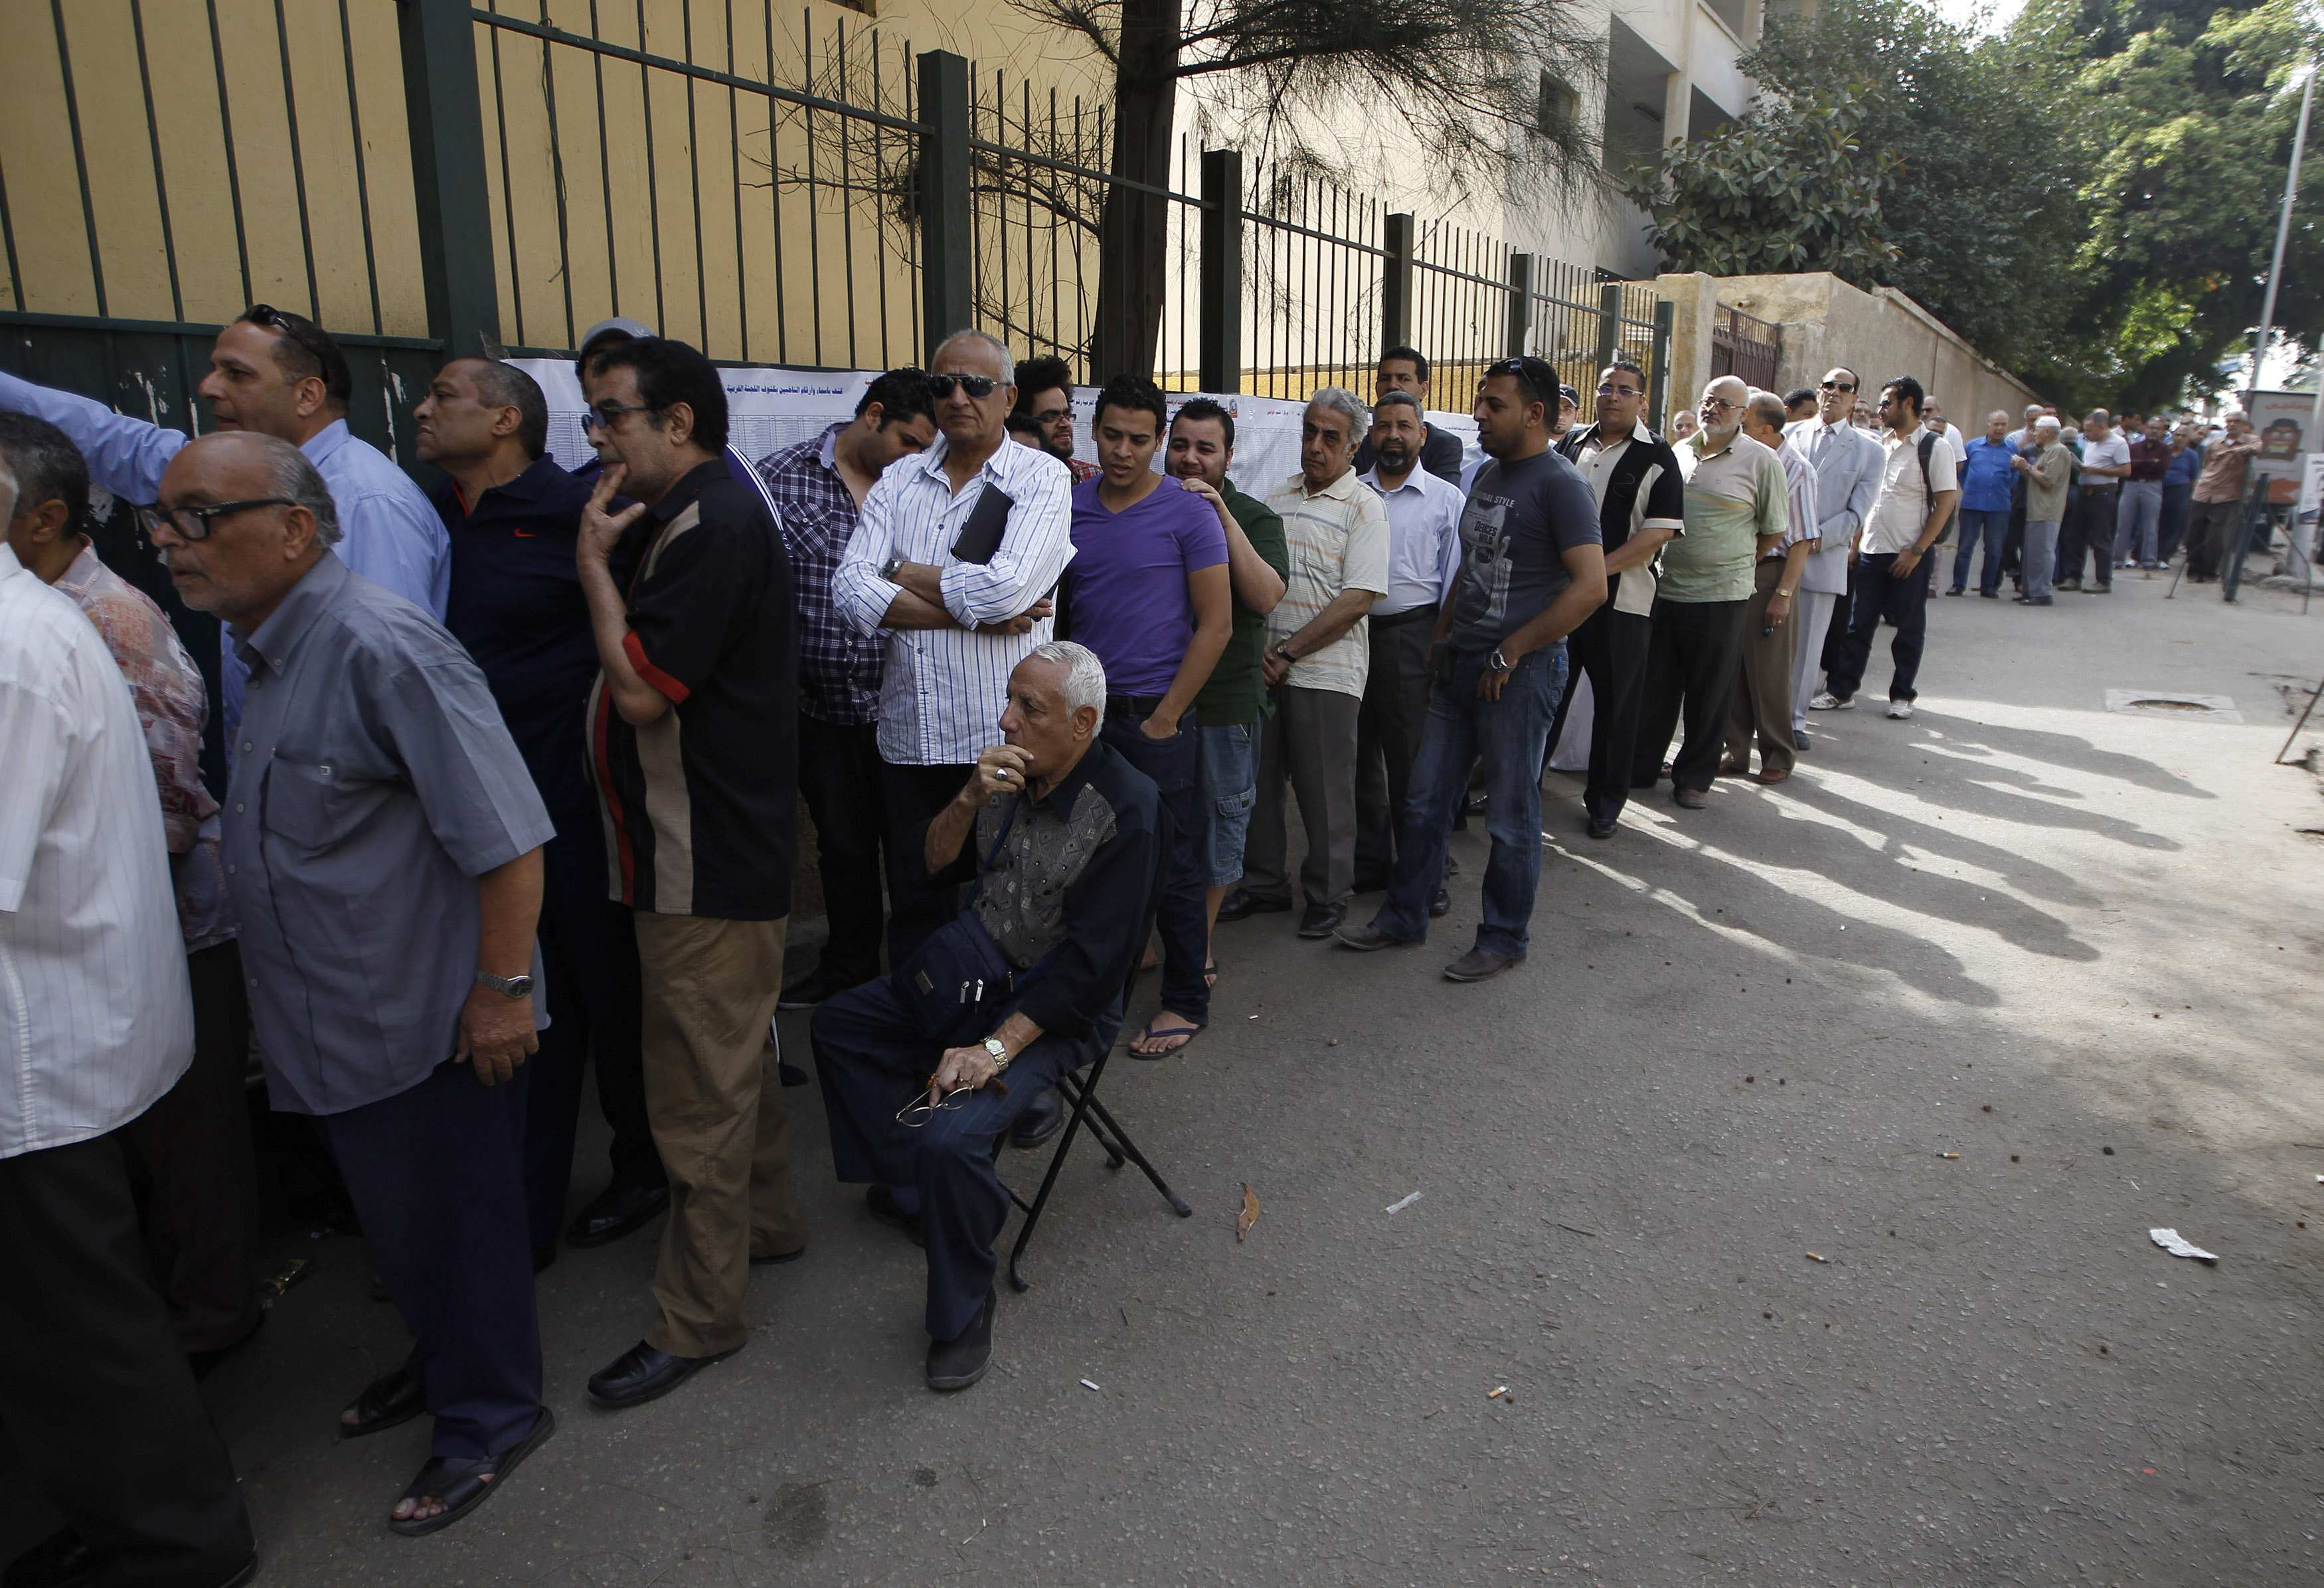 FACTBOX l Public rights, freedoms and duties in Egypt's new constitution